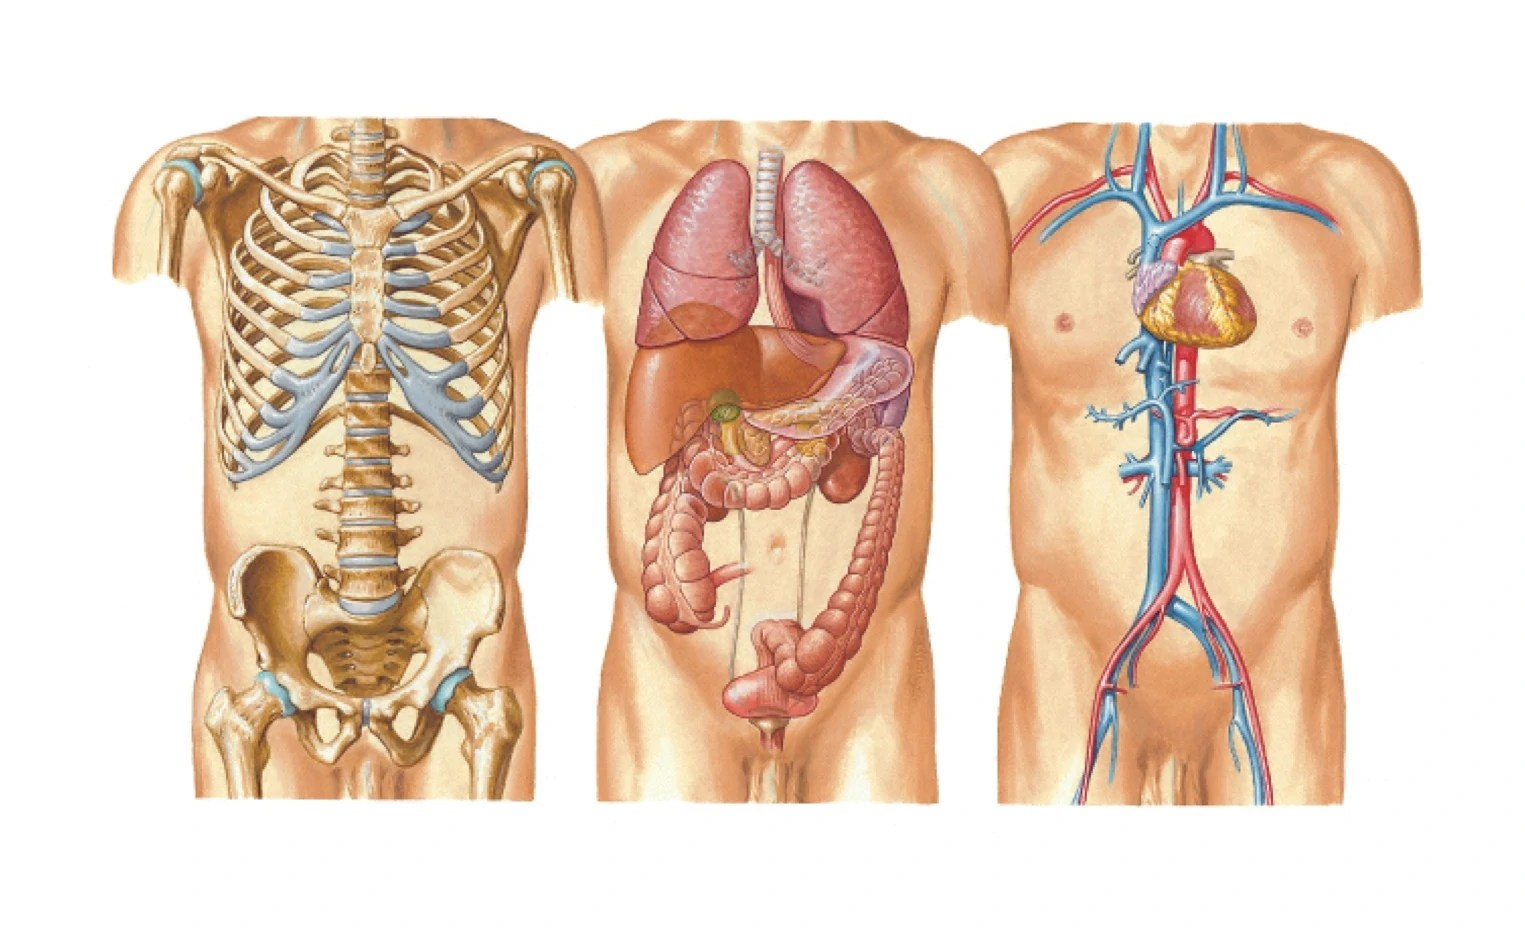 hight resolution of diagram of chest organs wiring diagram blogs diagram of organs upper chest diagram of chest organs